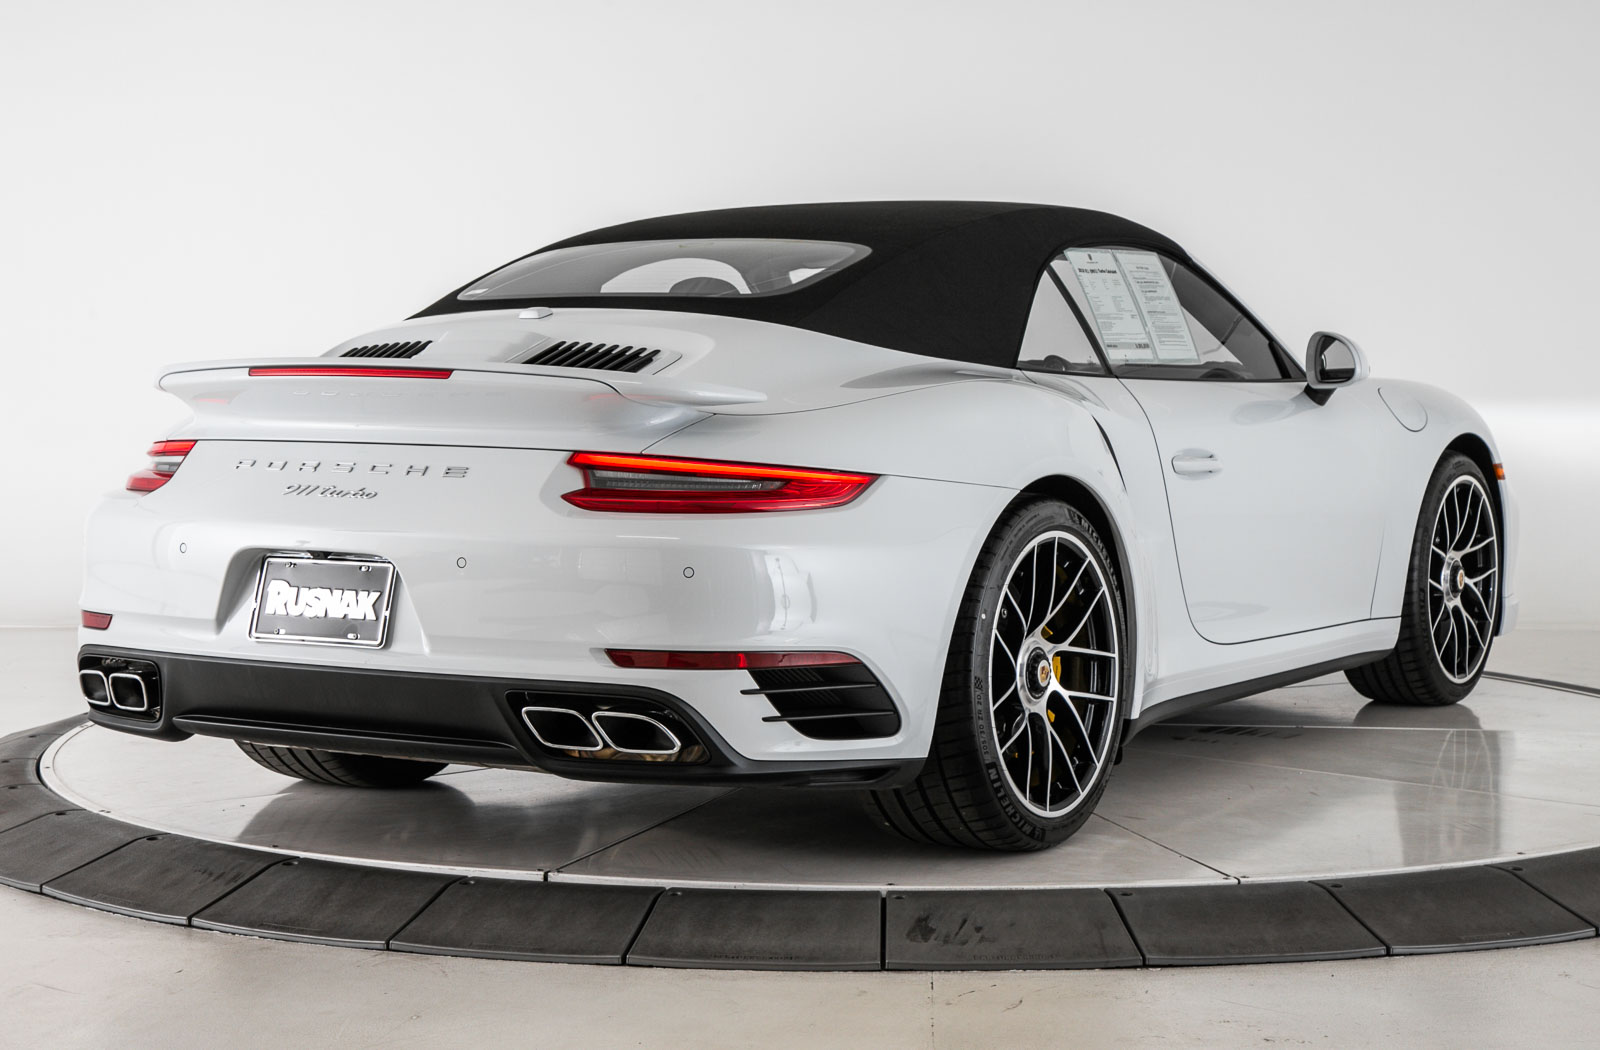 Certified Pre-Owned 2018 Porsche 911 Turbo Cabriolet